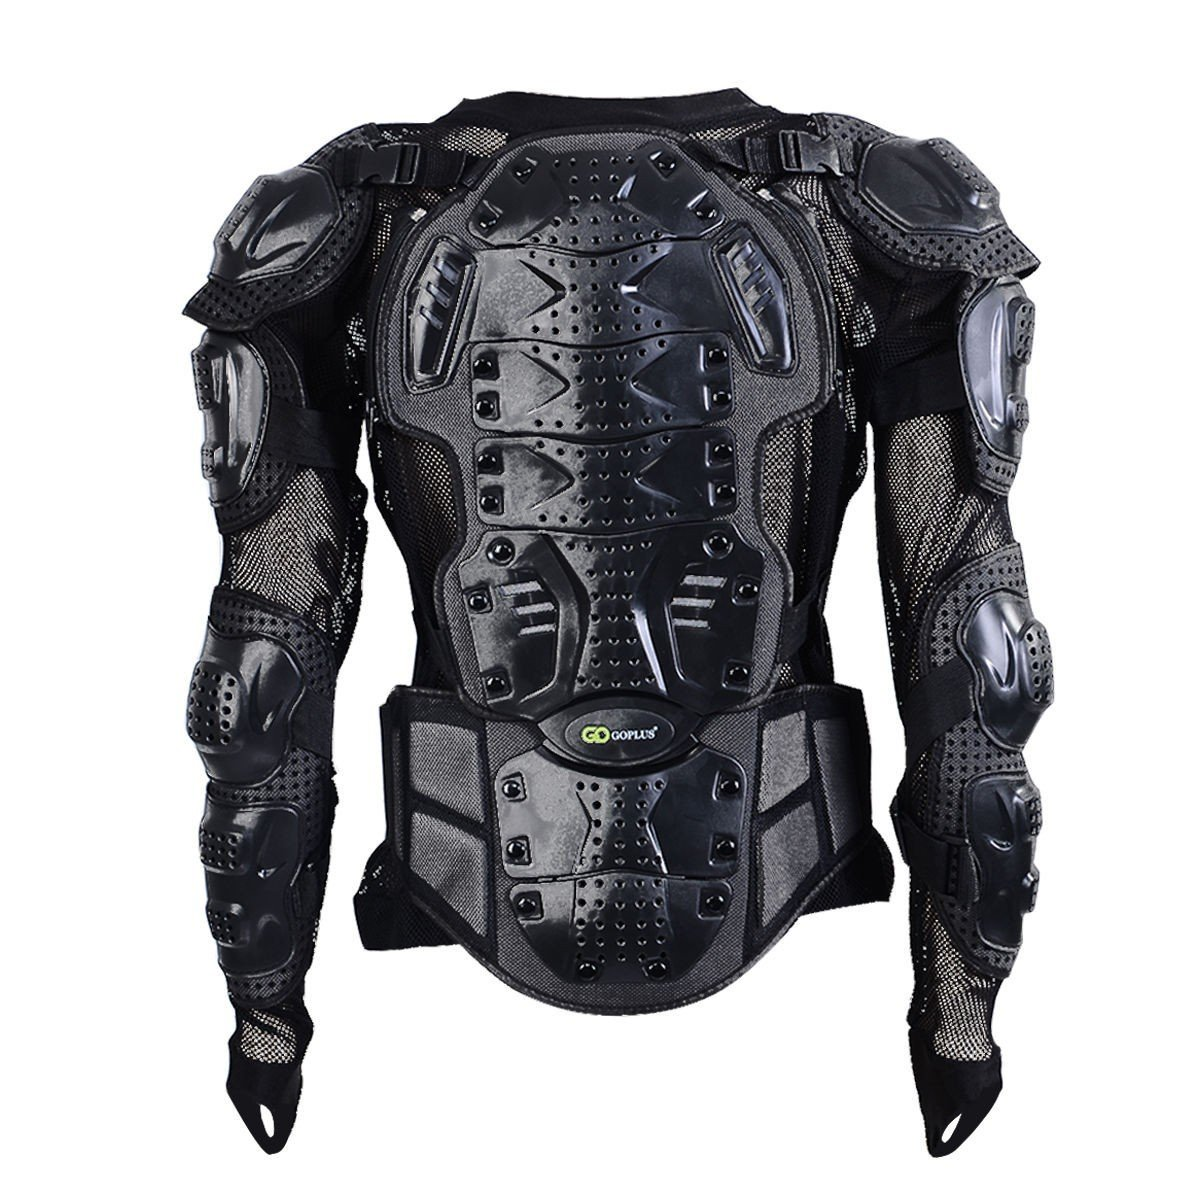 Motorcycle Motocross Clothing Racing Men's Armor Spine Chest Protective Jacket Black